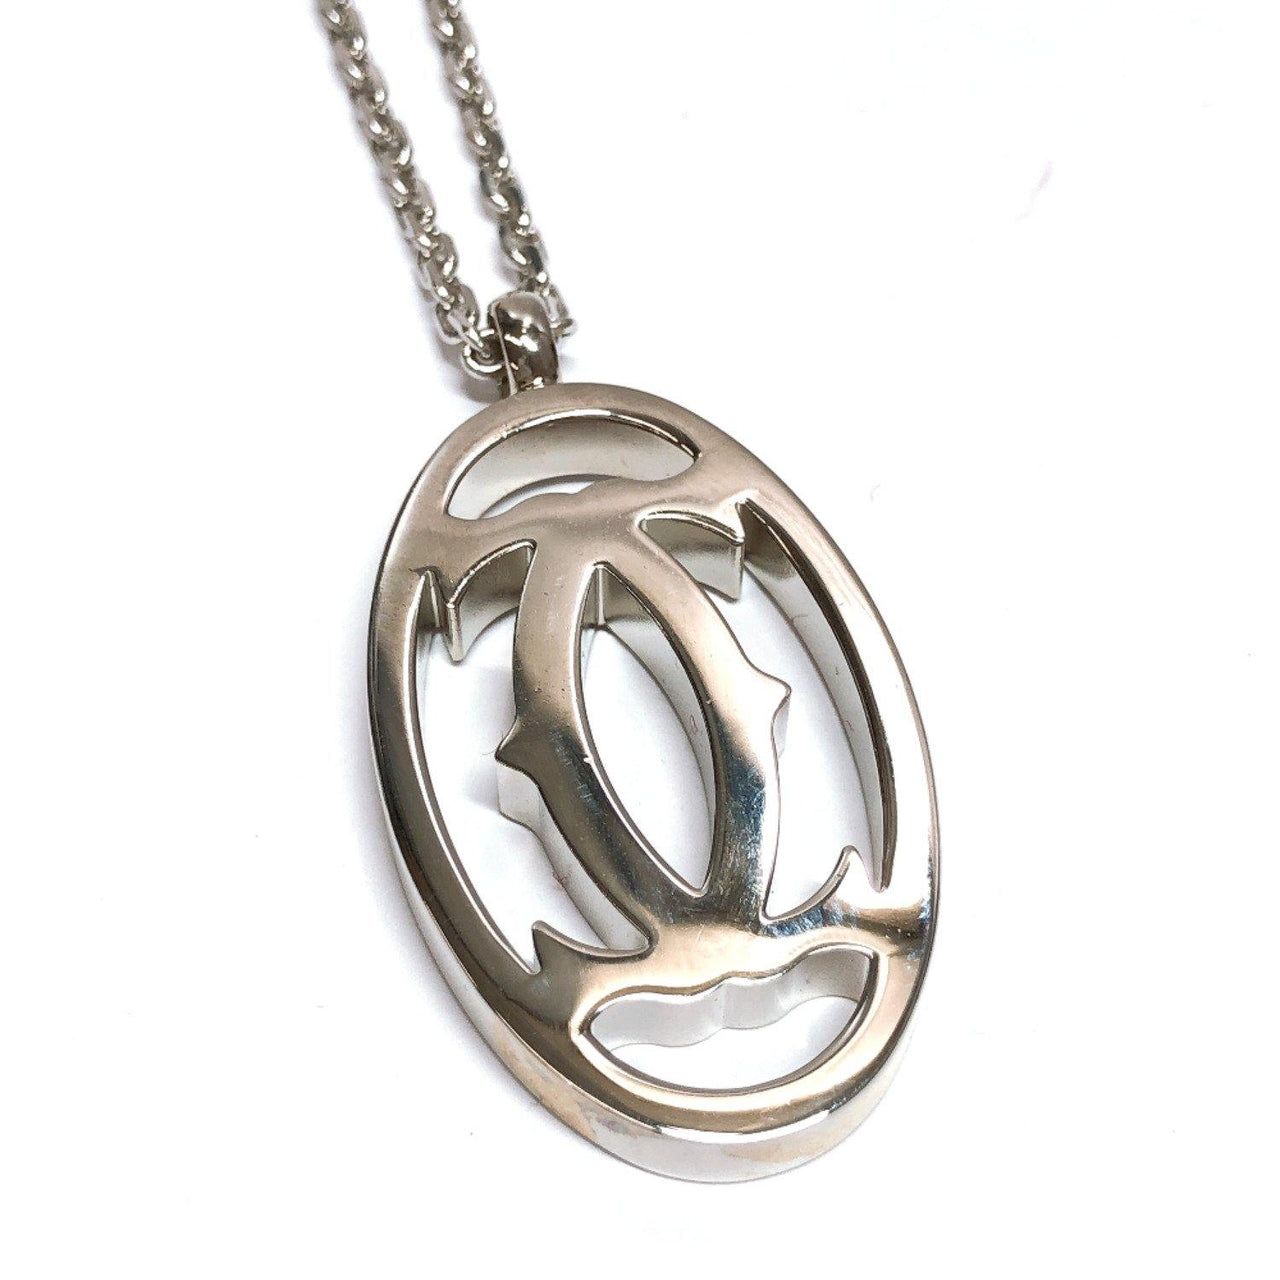 CARTIER Pendant top Necklace metal Silver Women Used - JP-BRANDS.com